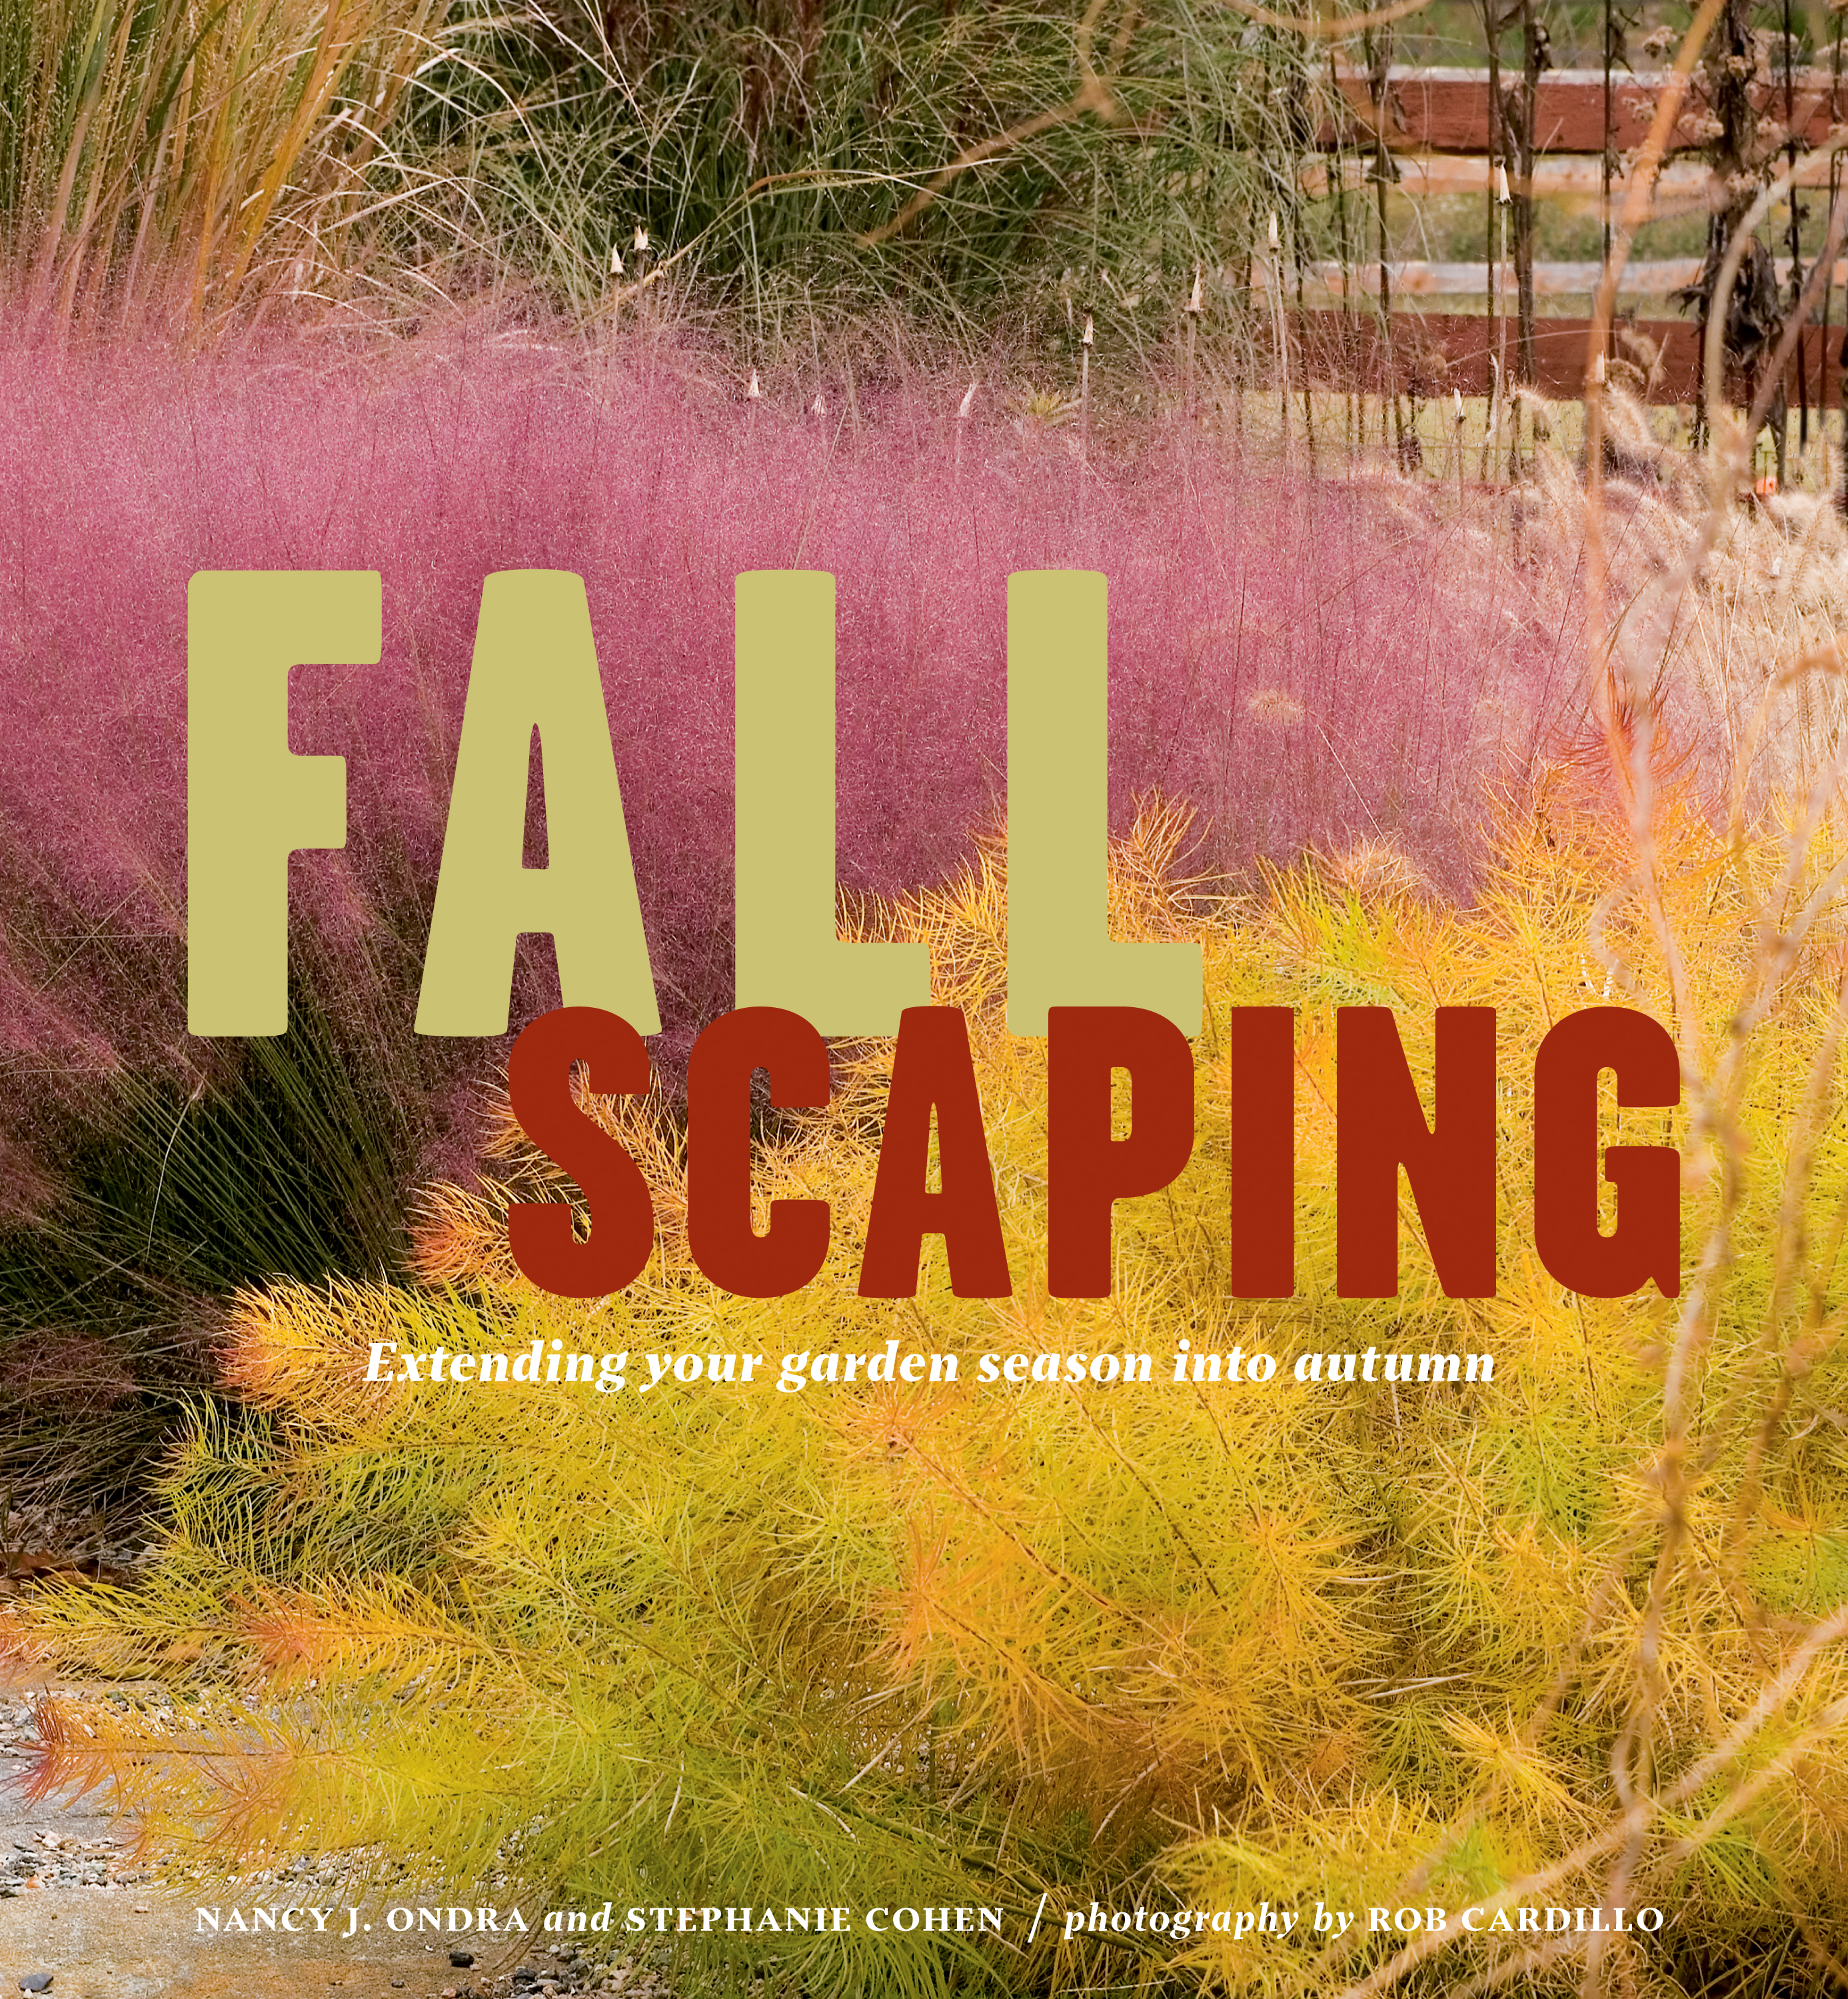 Fallscaping Extending Your Garden Season into Autumn